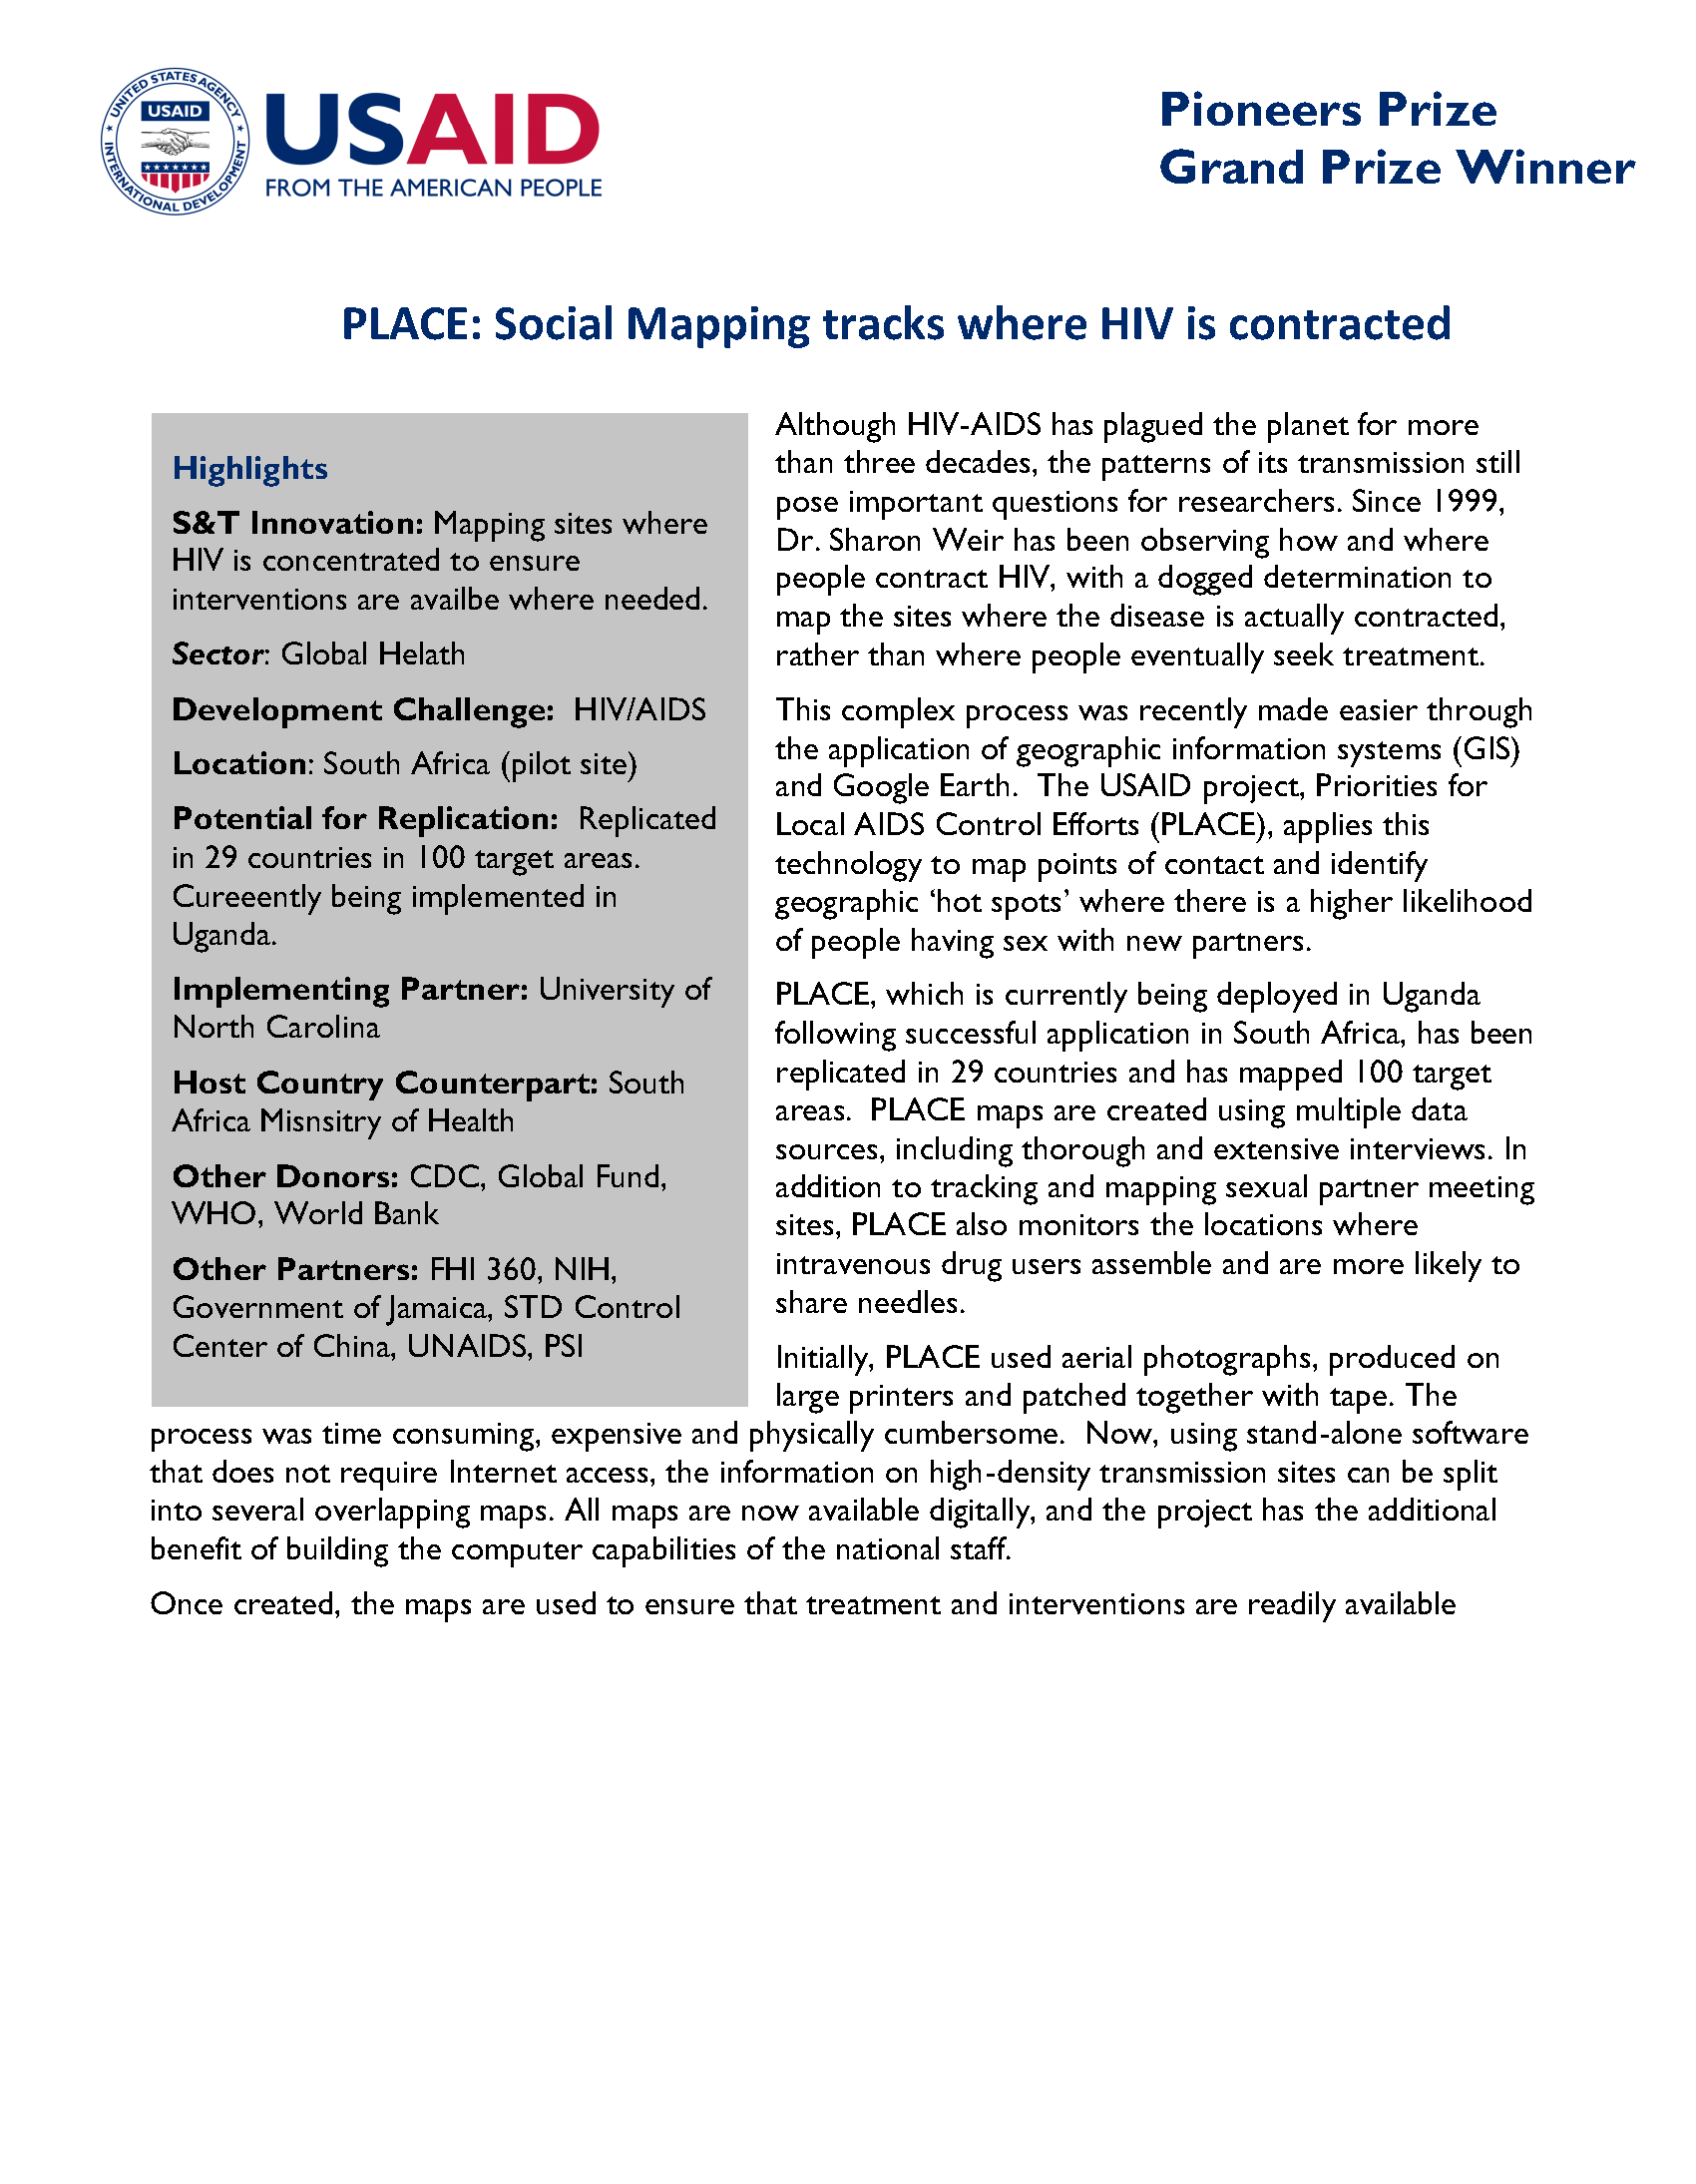 The Priorities for Local AIDS Control Efforts (PLACE) method